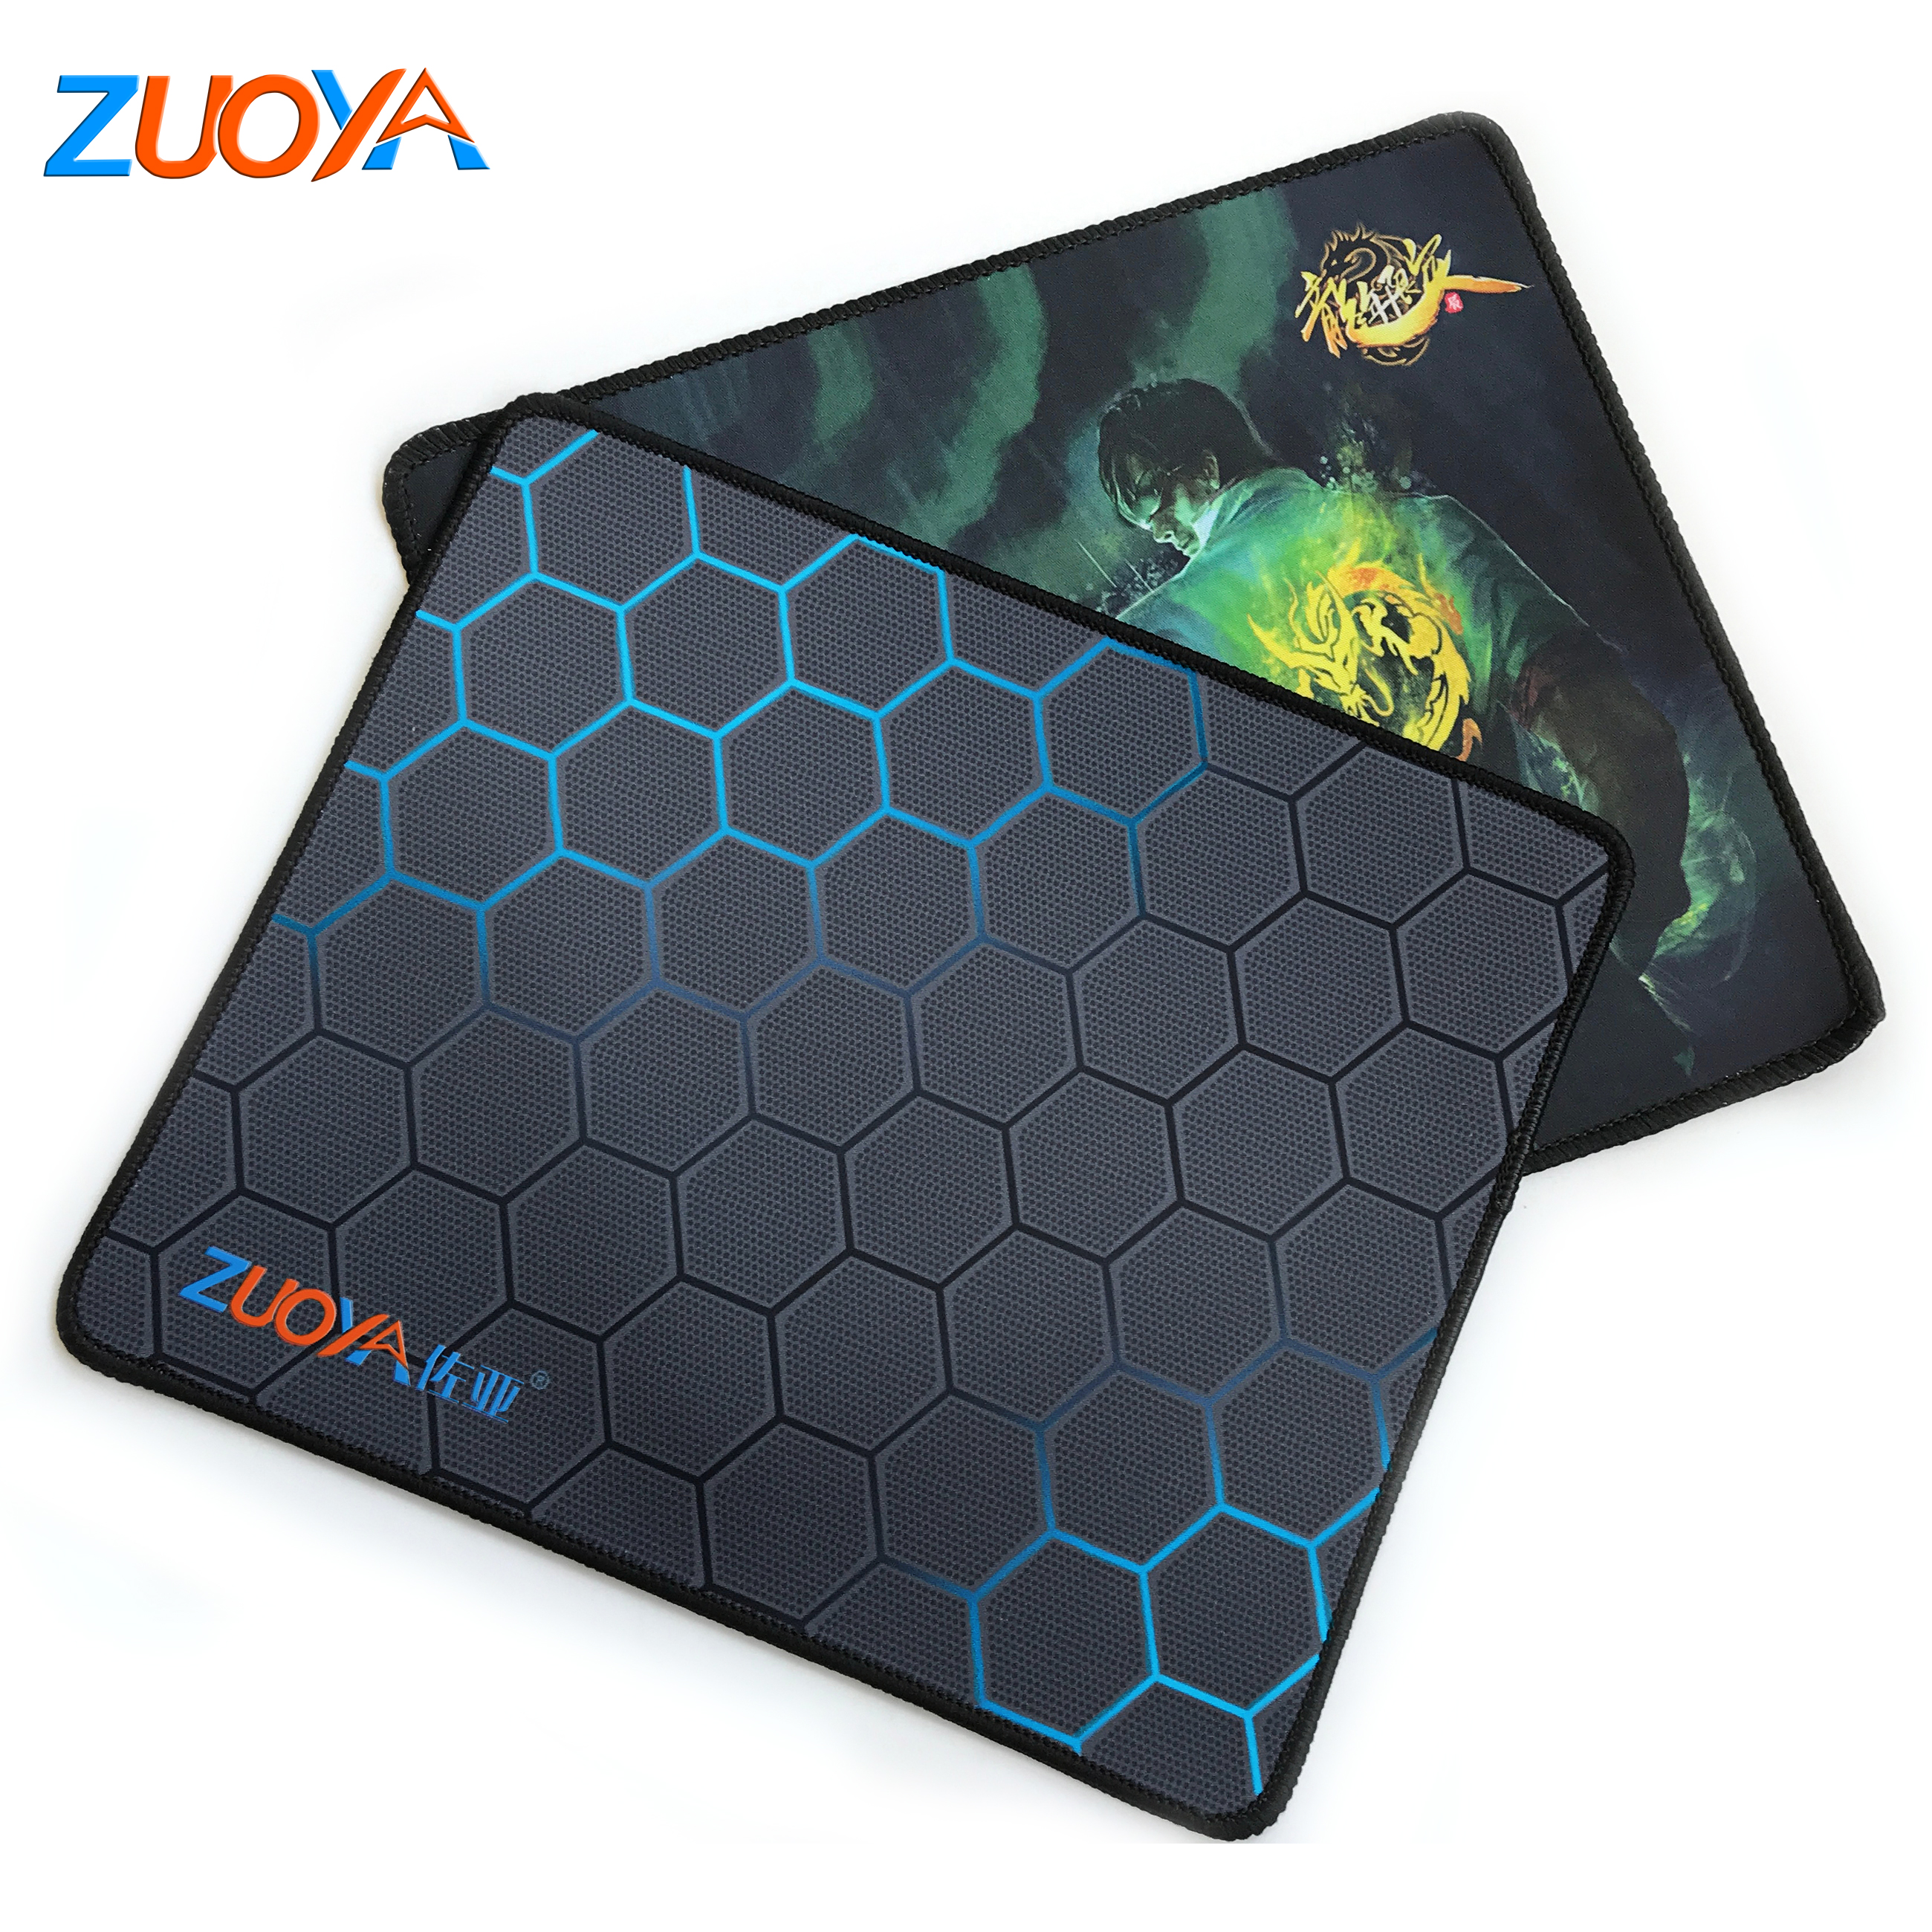 <font><b>Gaming</b></font> <font><b>Mouse</b></font> Pad Gamer Computer Anti-slip <font><b>with</b></font> Locking Edge <font><b>Mousepad</b></font> Natural Rubber Surface Mause <font><b>Keyboard</b></font> Desk Mat Game office image